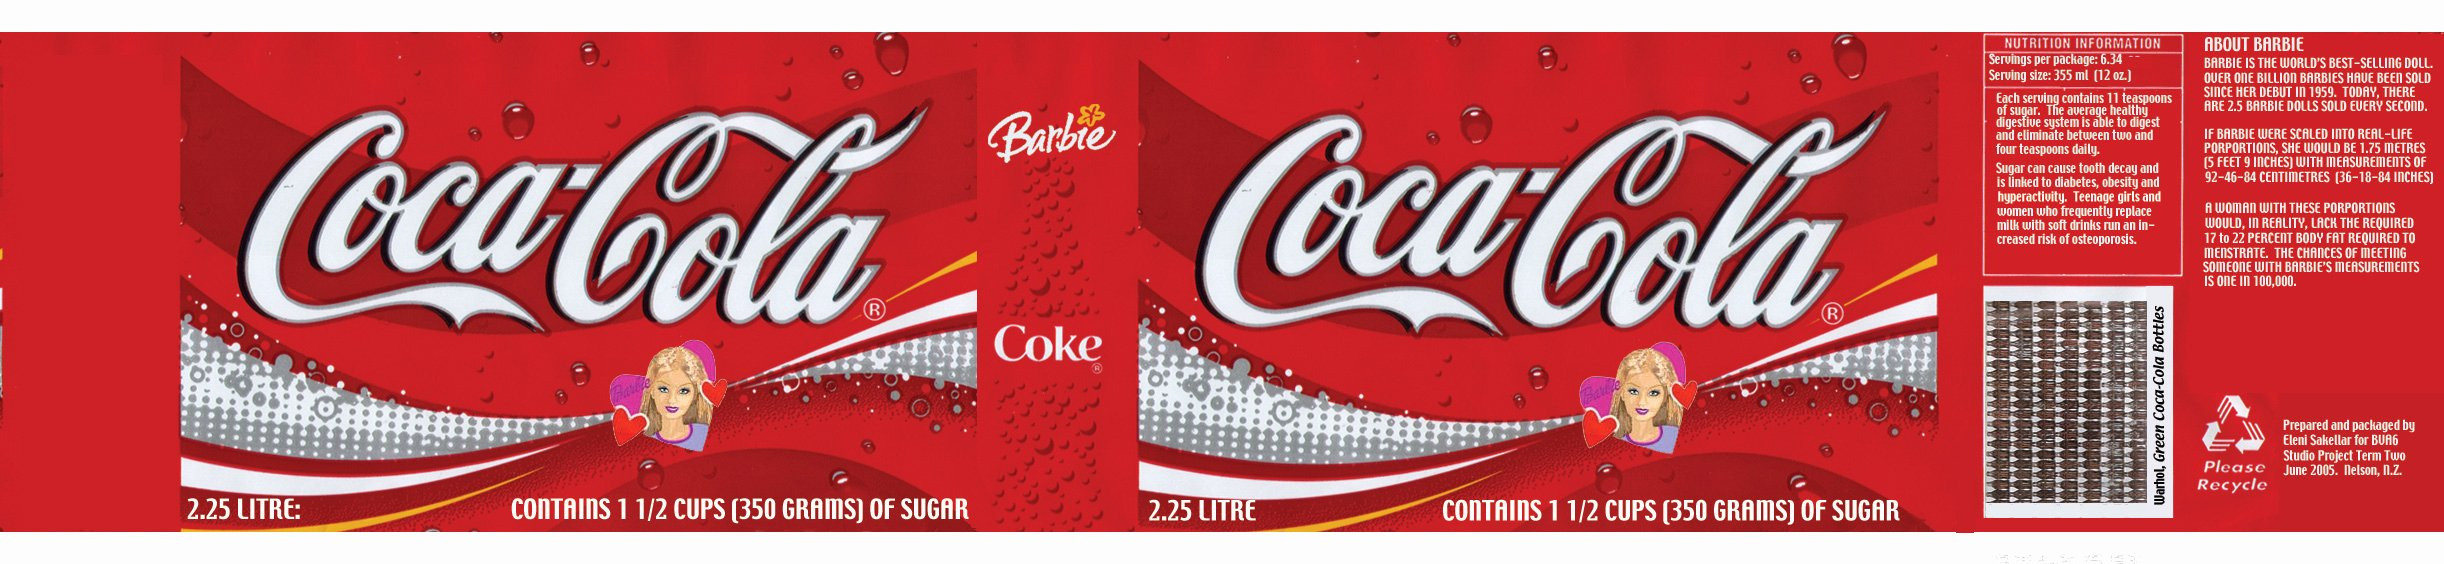 2 Liter Bottle Label Template Inspirational 27 Of Coke Label Template